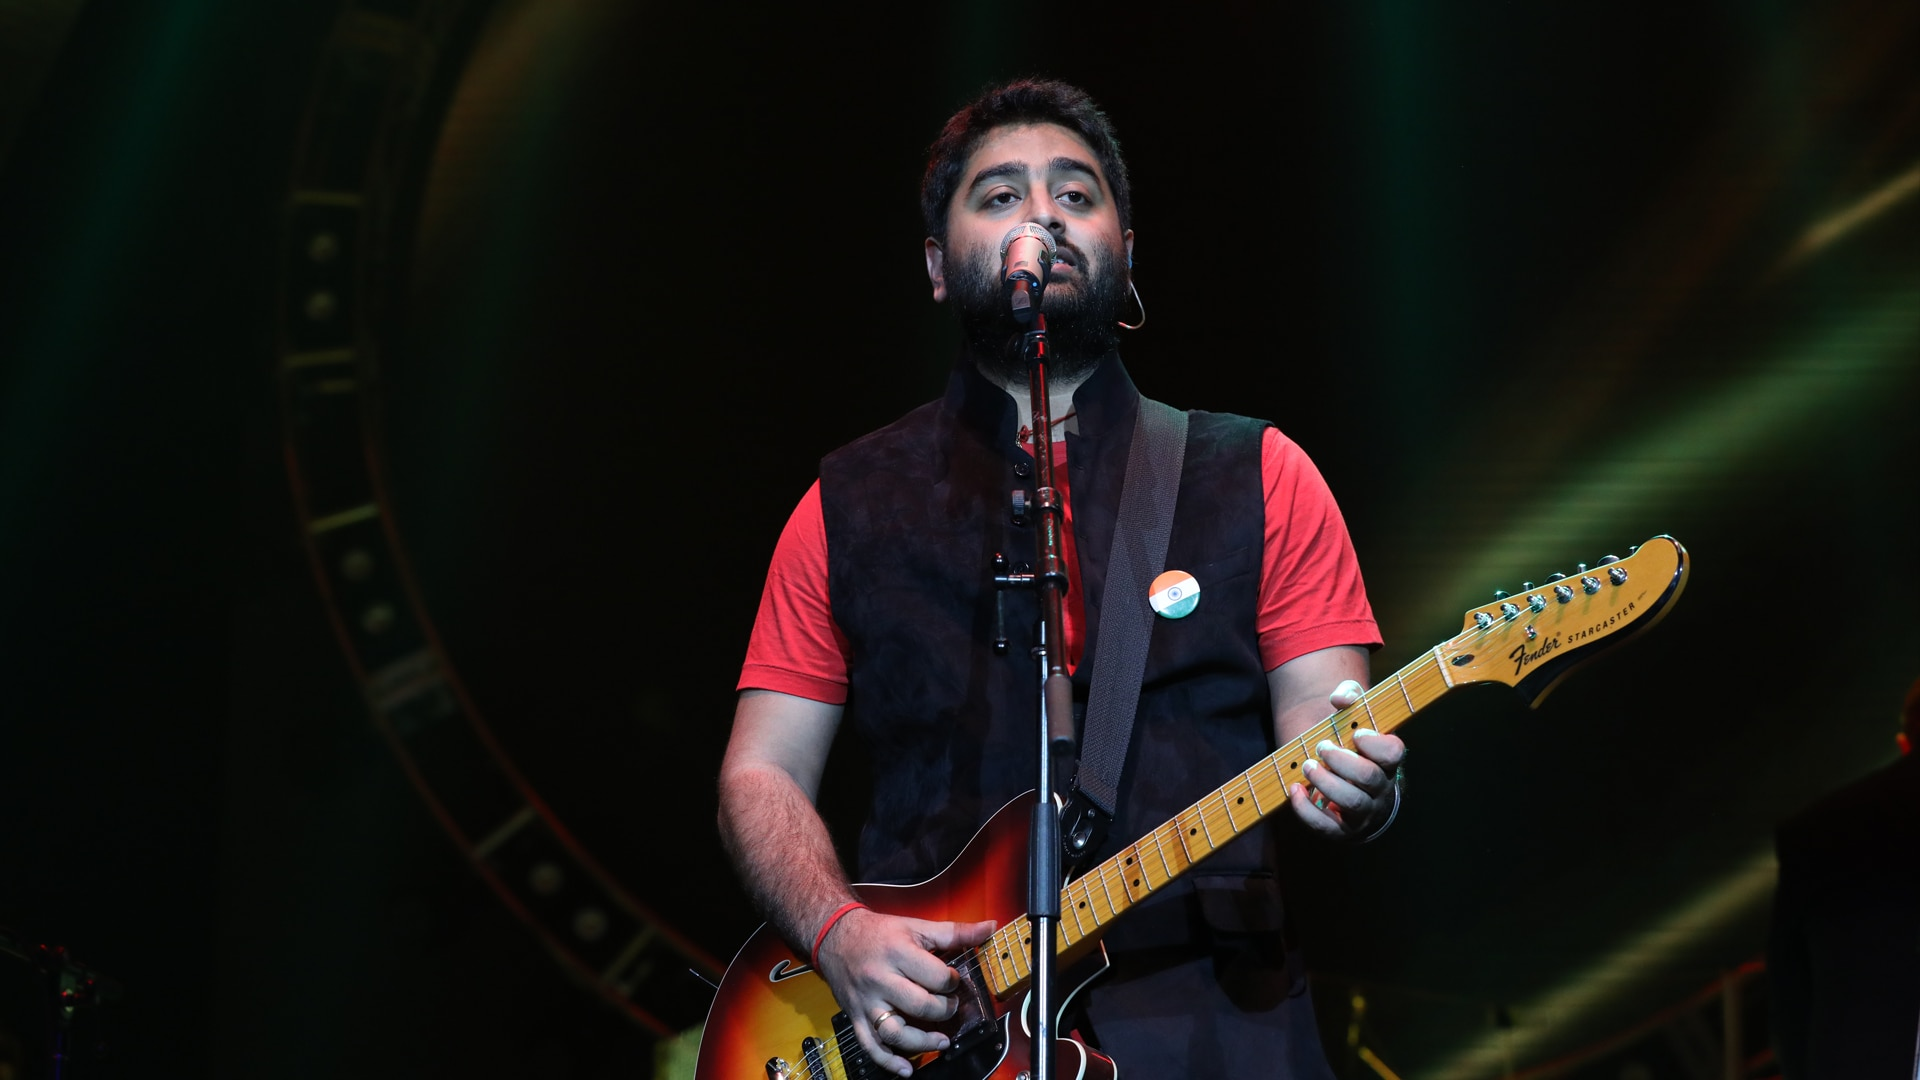 Arijit Singh Live in Concert with World Musicians